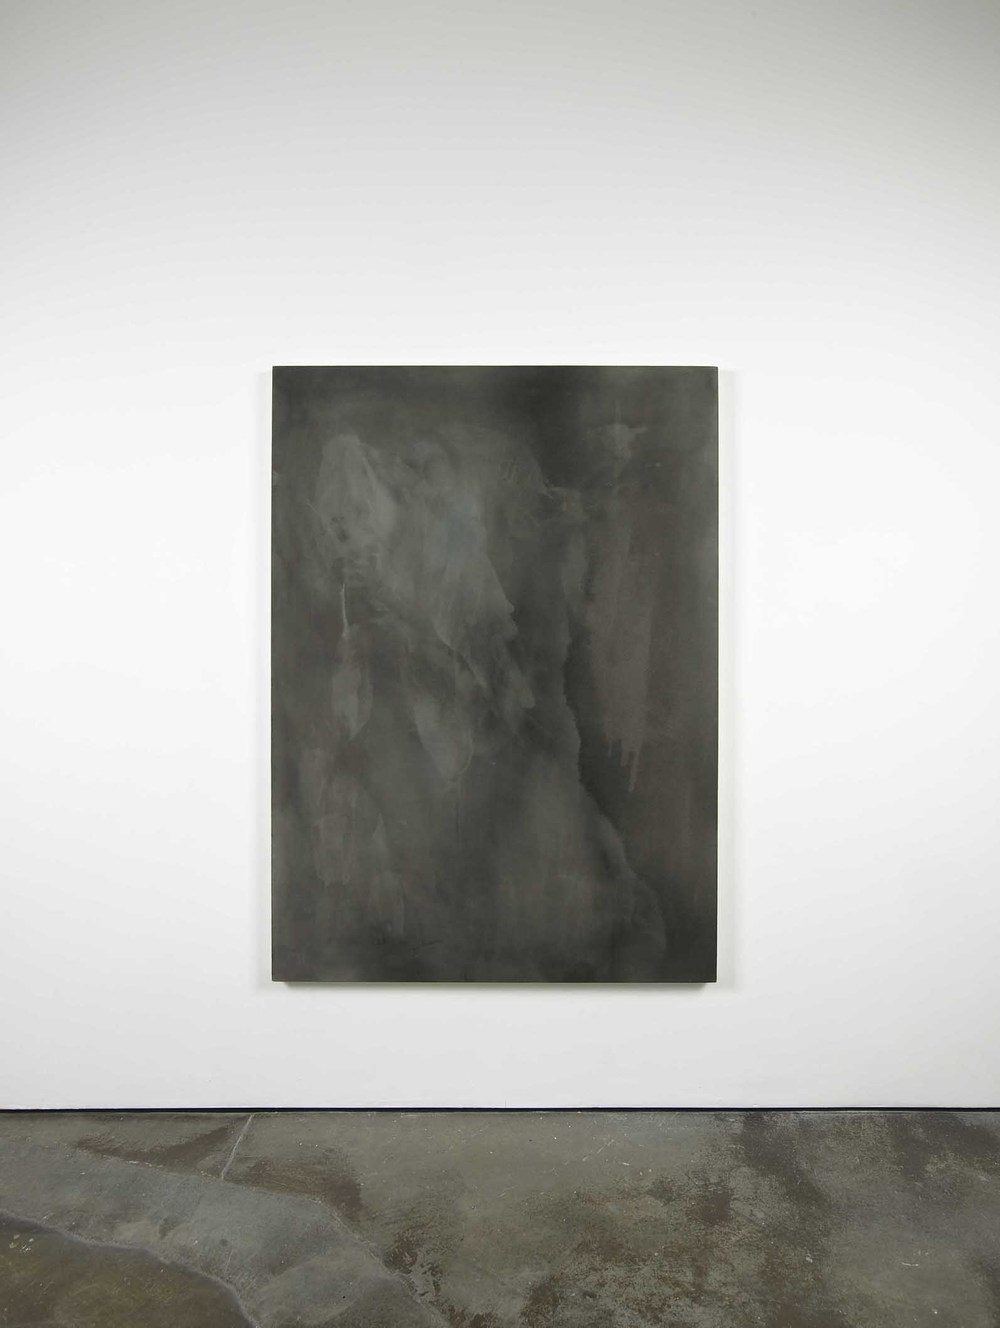 Padraig Timoney Broken two way mirror N°2 2009 Rabbit skin glue and pigment on canvas 115 x 163 cm / 45.2 x 64 In